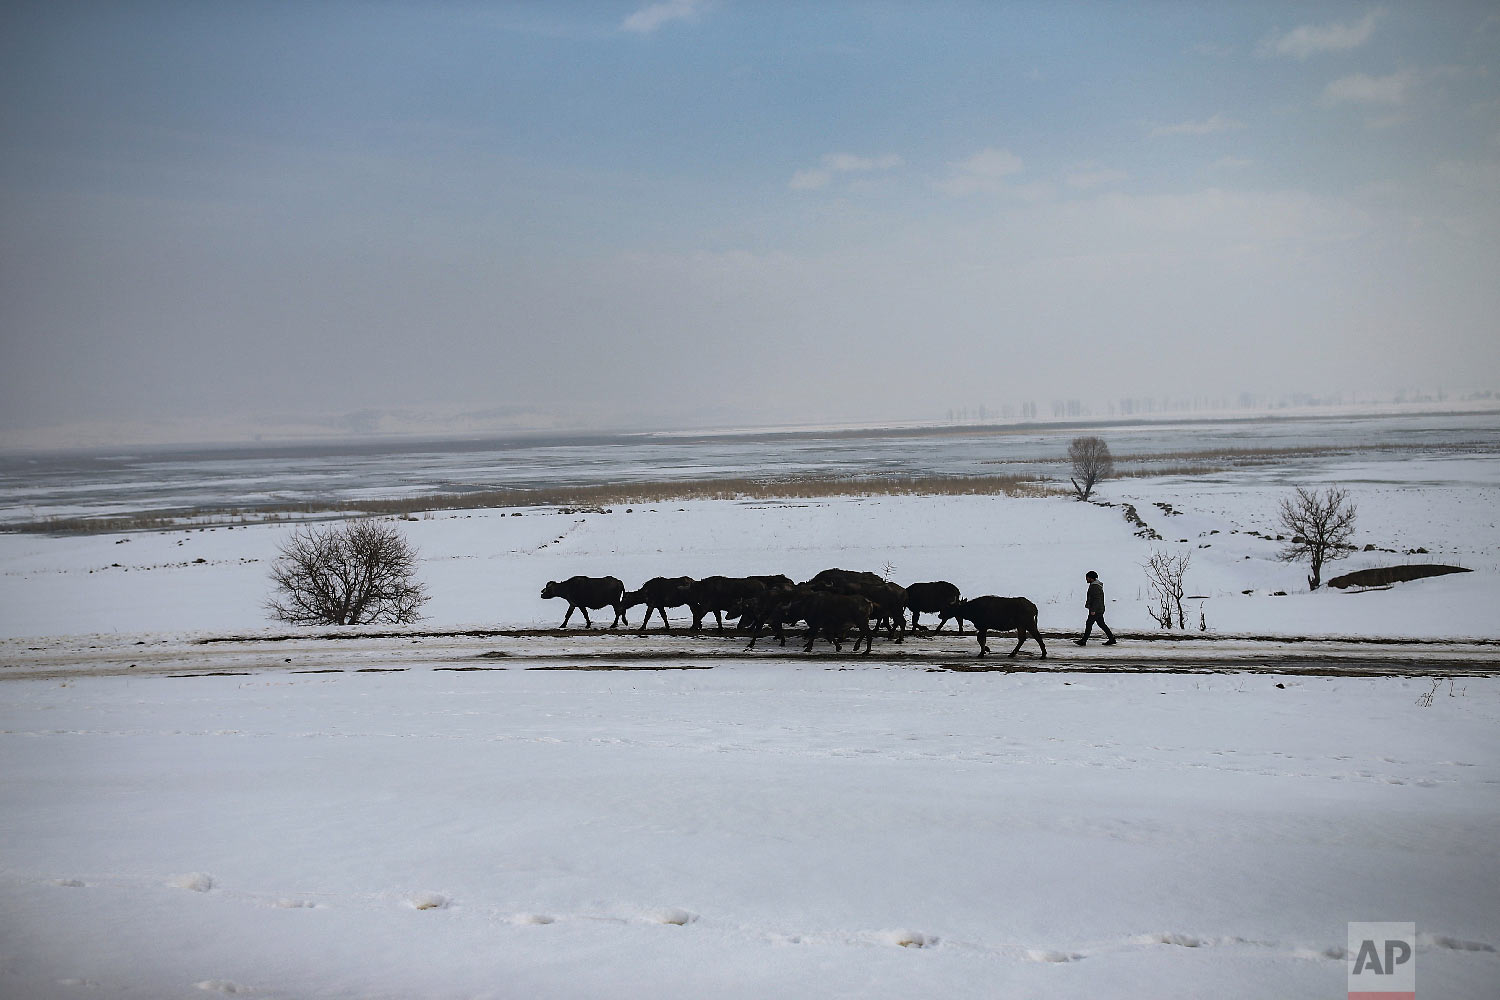 Muhammed Toren walks his family's water buffaloes to a hot spring near the village of Budakli, in the mountainous Bitlis province of eastern Turkey, Thursday, Jan. 24, 2019. (AP Photo/Emrah Gurel)